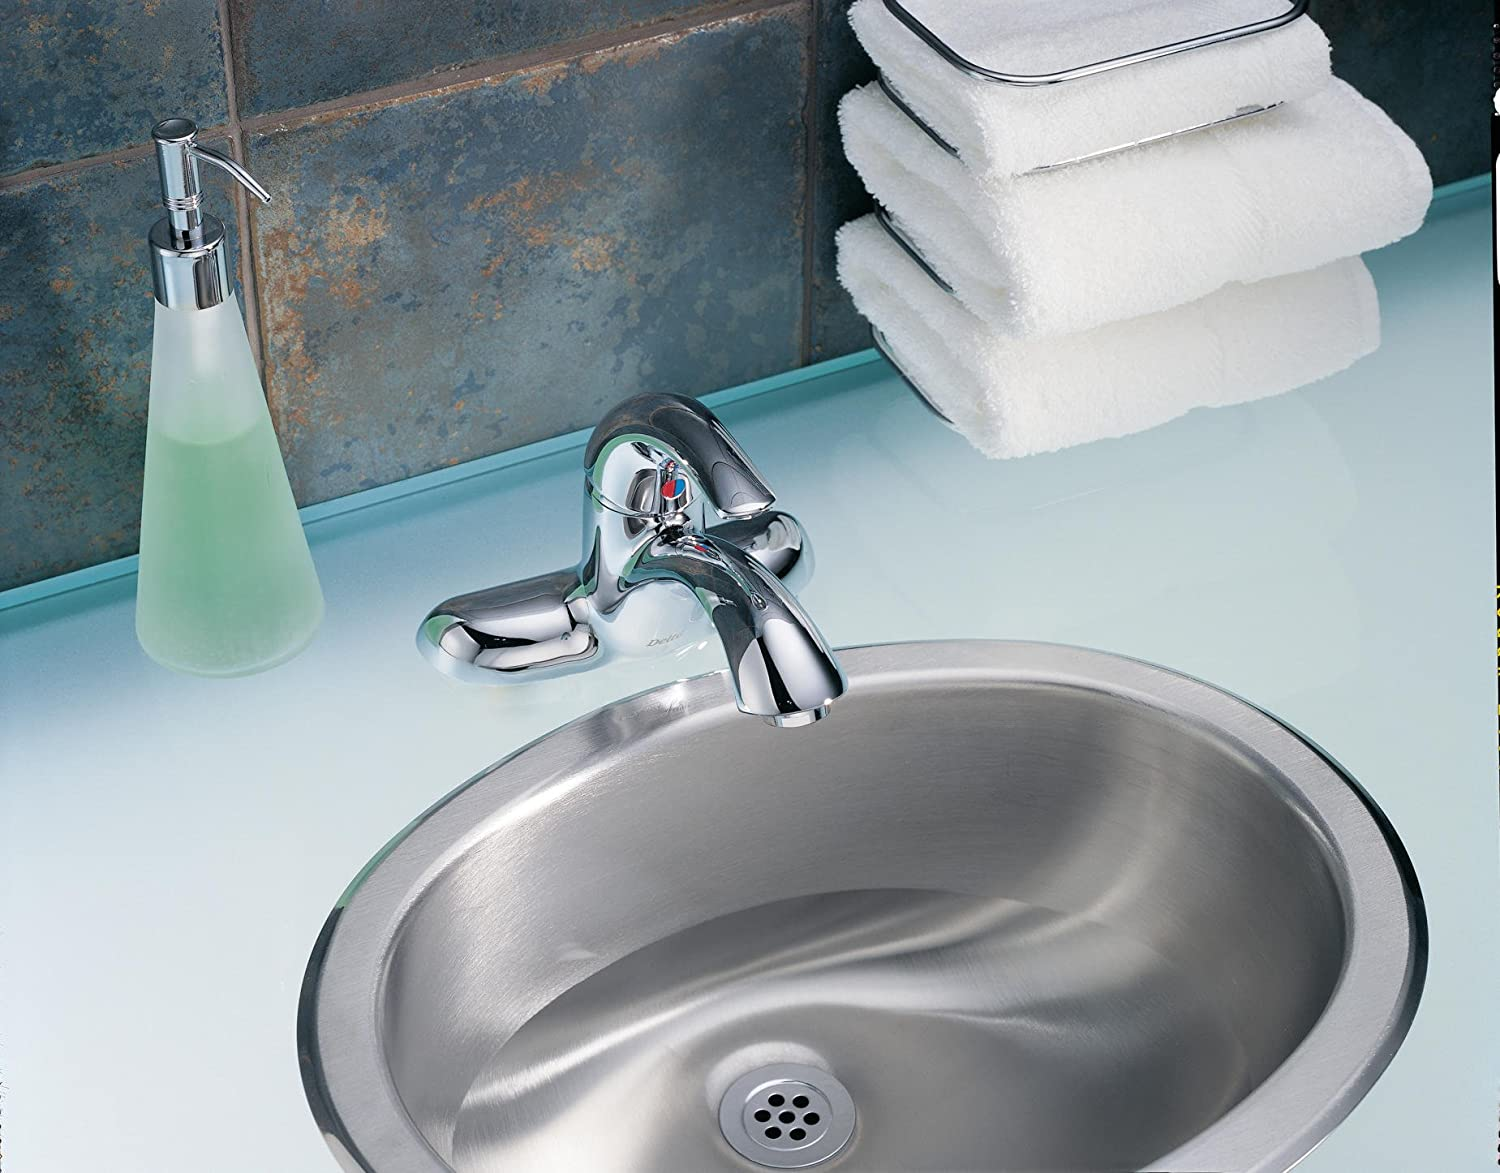 Enchanting Delta Faucet Models Image Collection - Faucet Collections ...